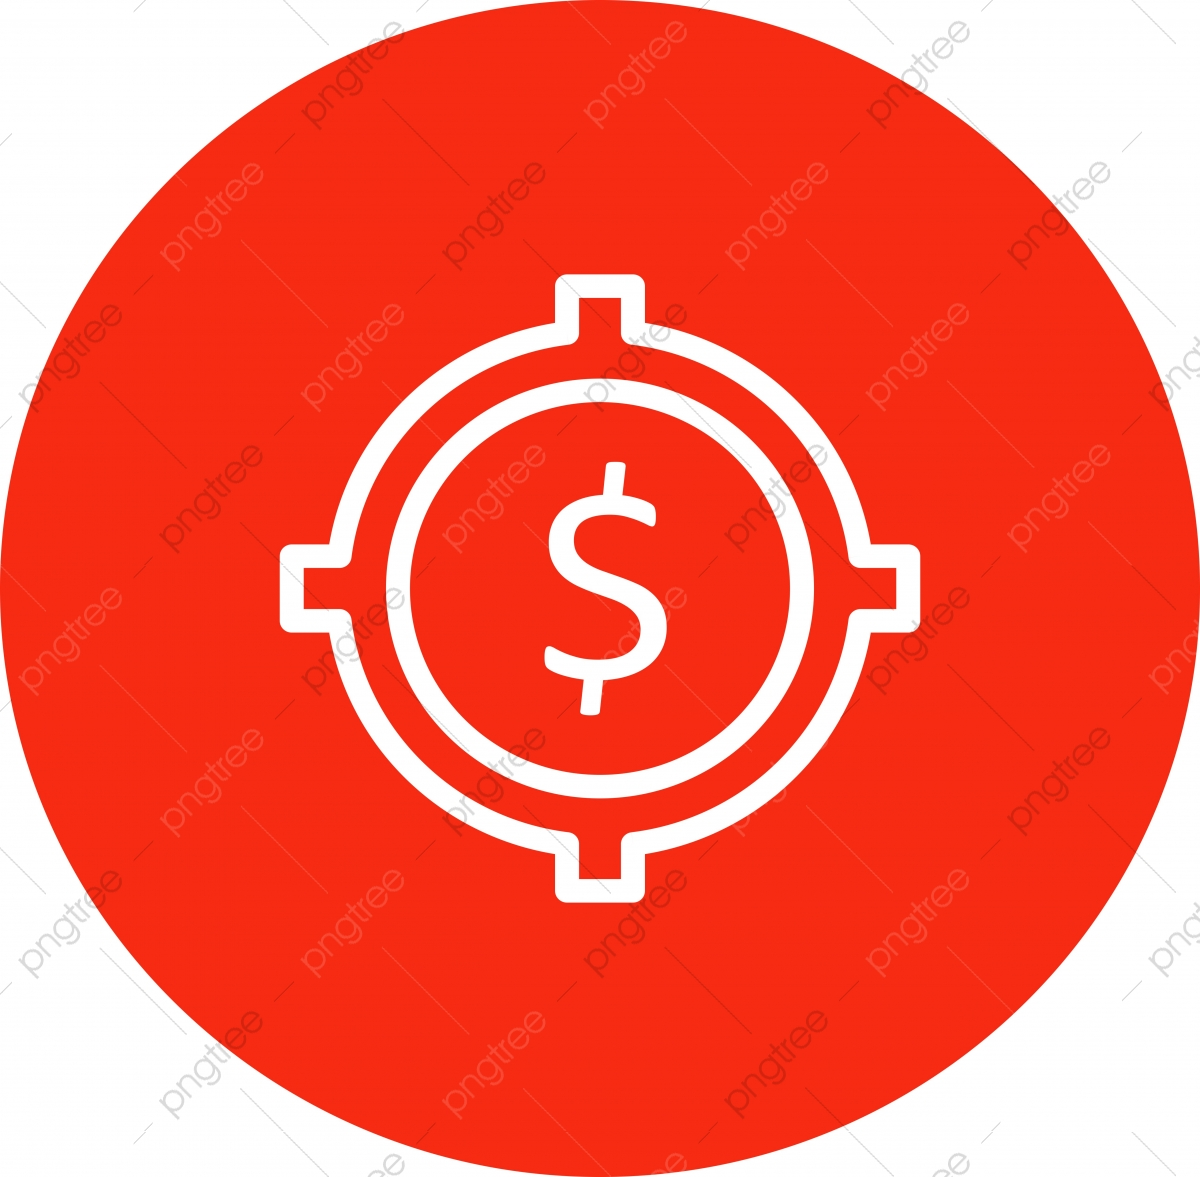 Target Dollar Icon Isolated On Abstract Background Target Icons Dollar Icons Background Icons Png And Vector With Transparent Background For Free Download